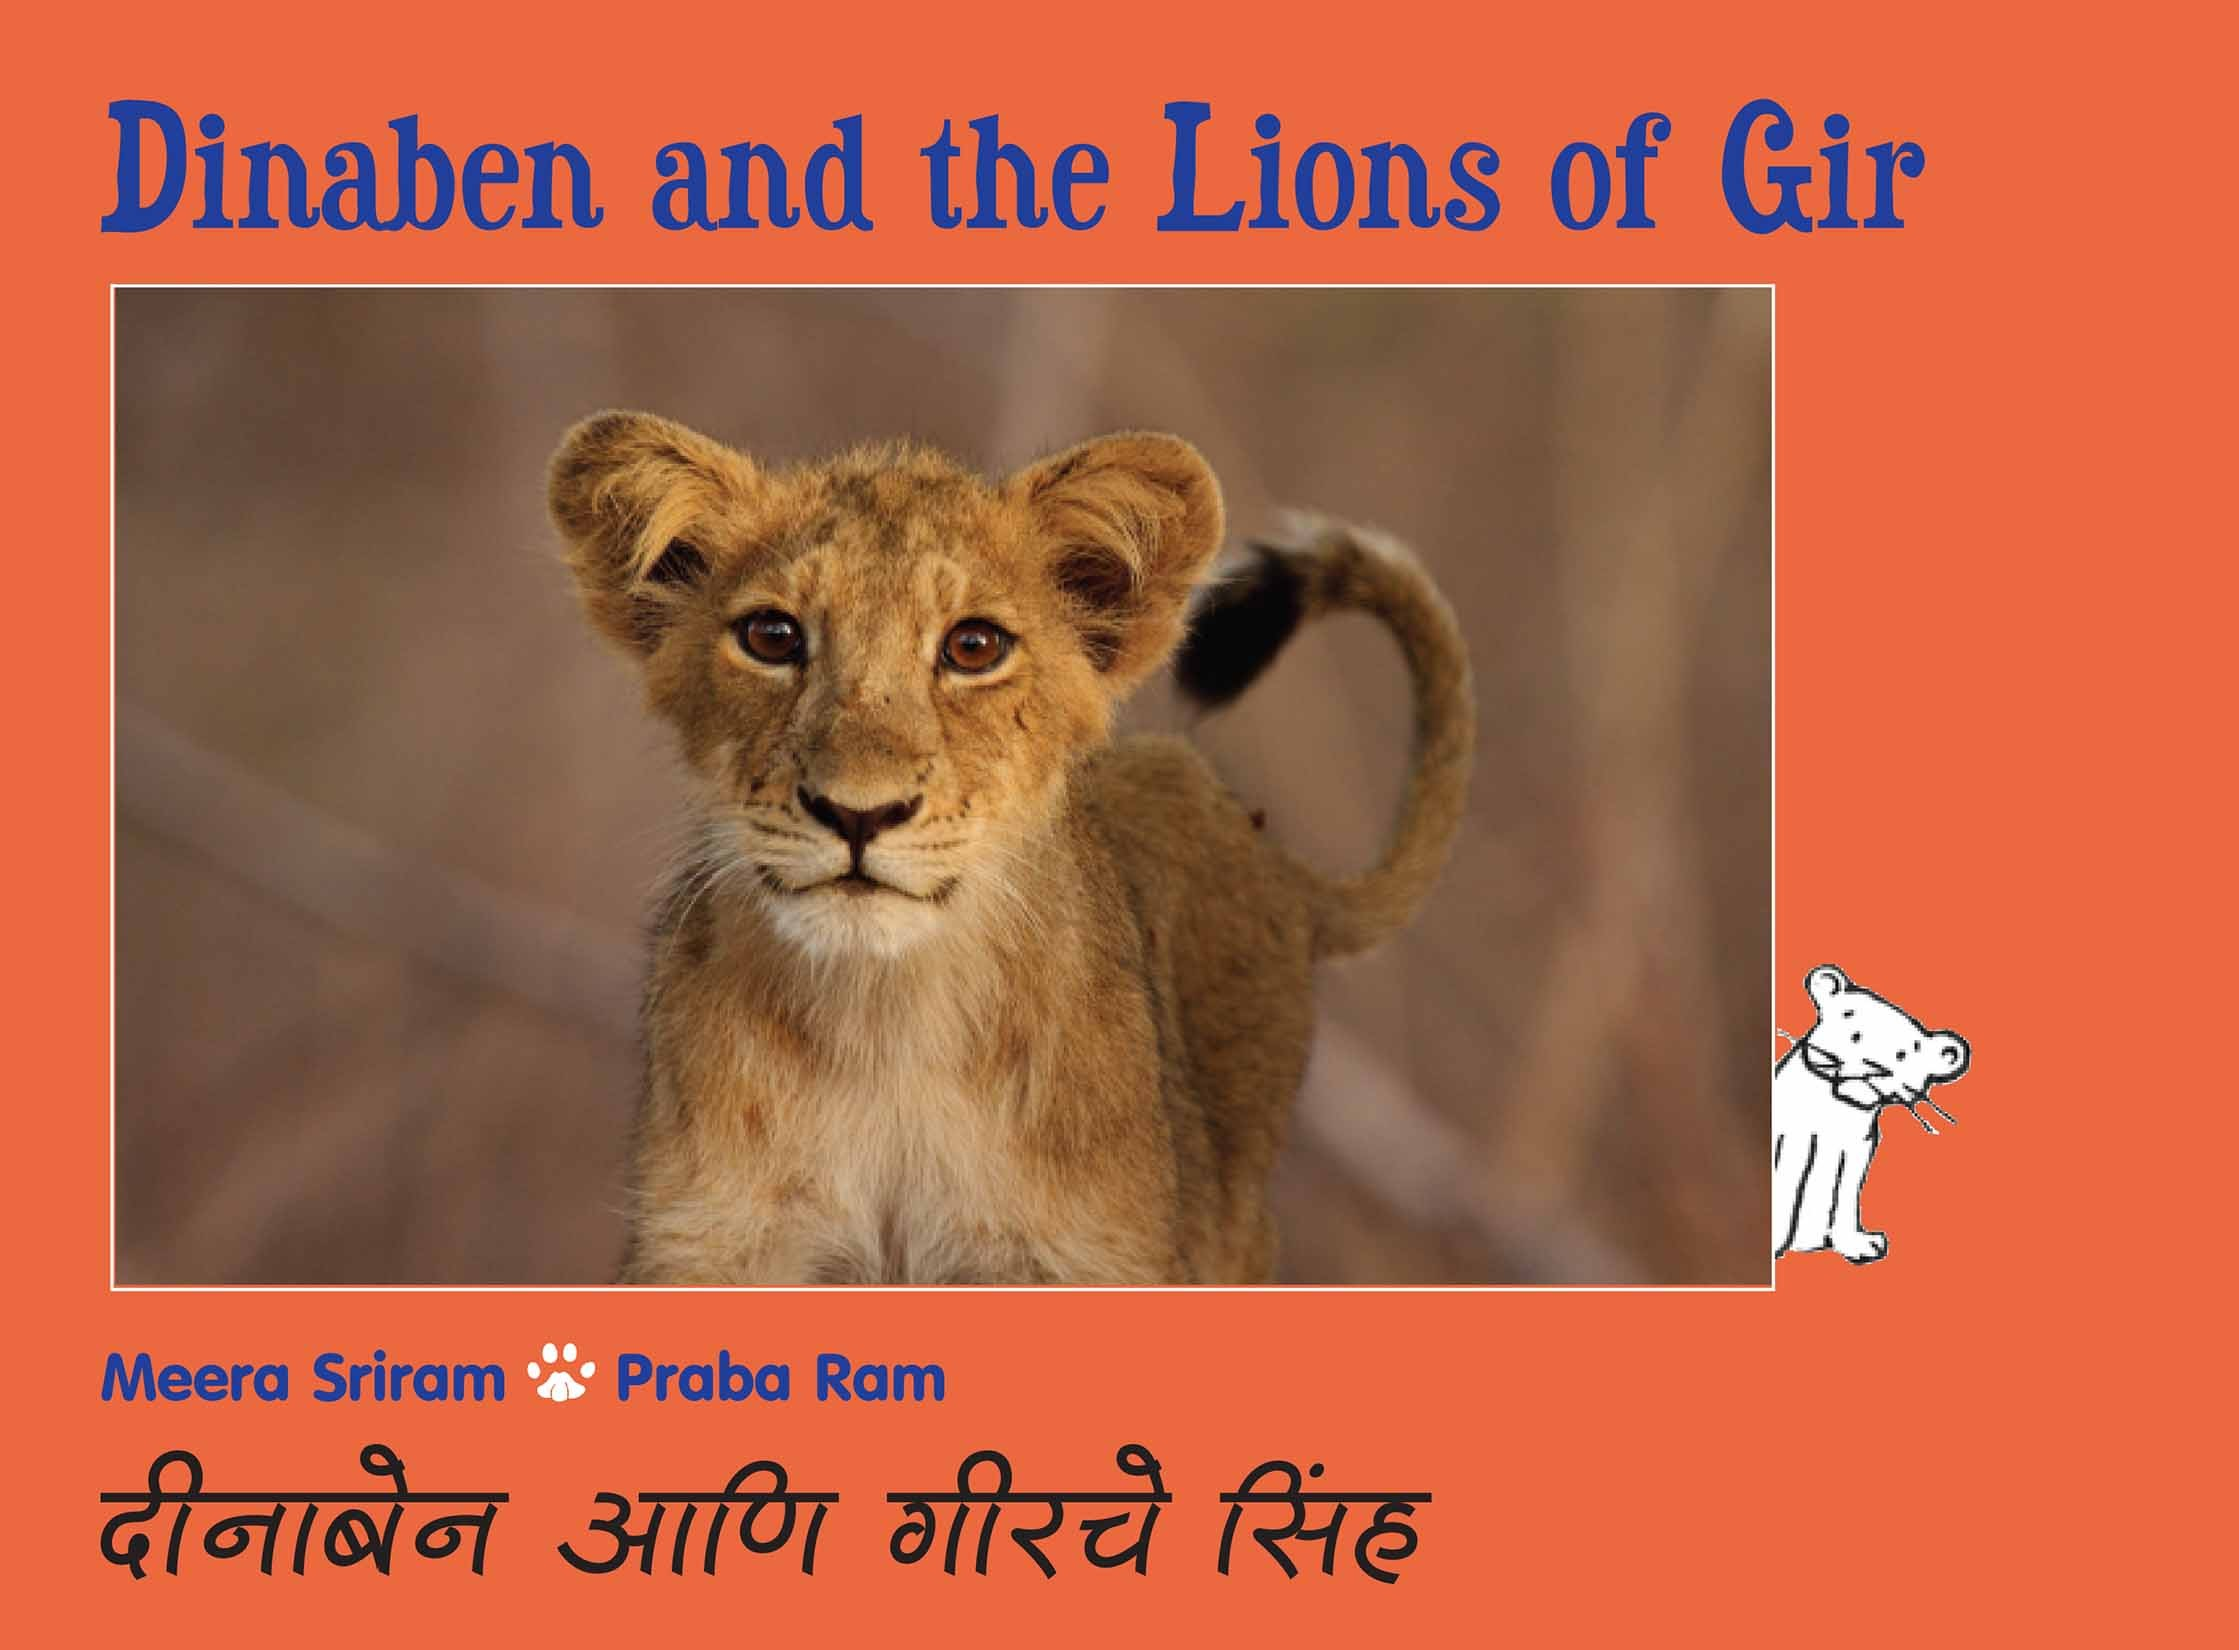 Dinaben And The Lions Of Gir/Dinaben Aani Girche Simh (English-Marathi)